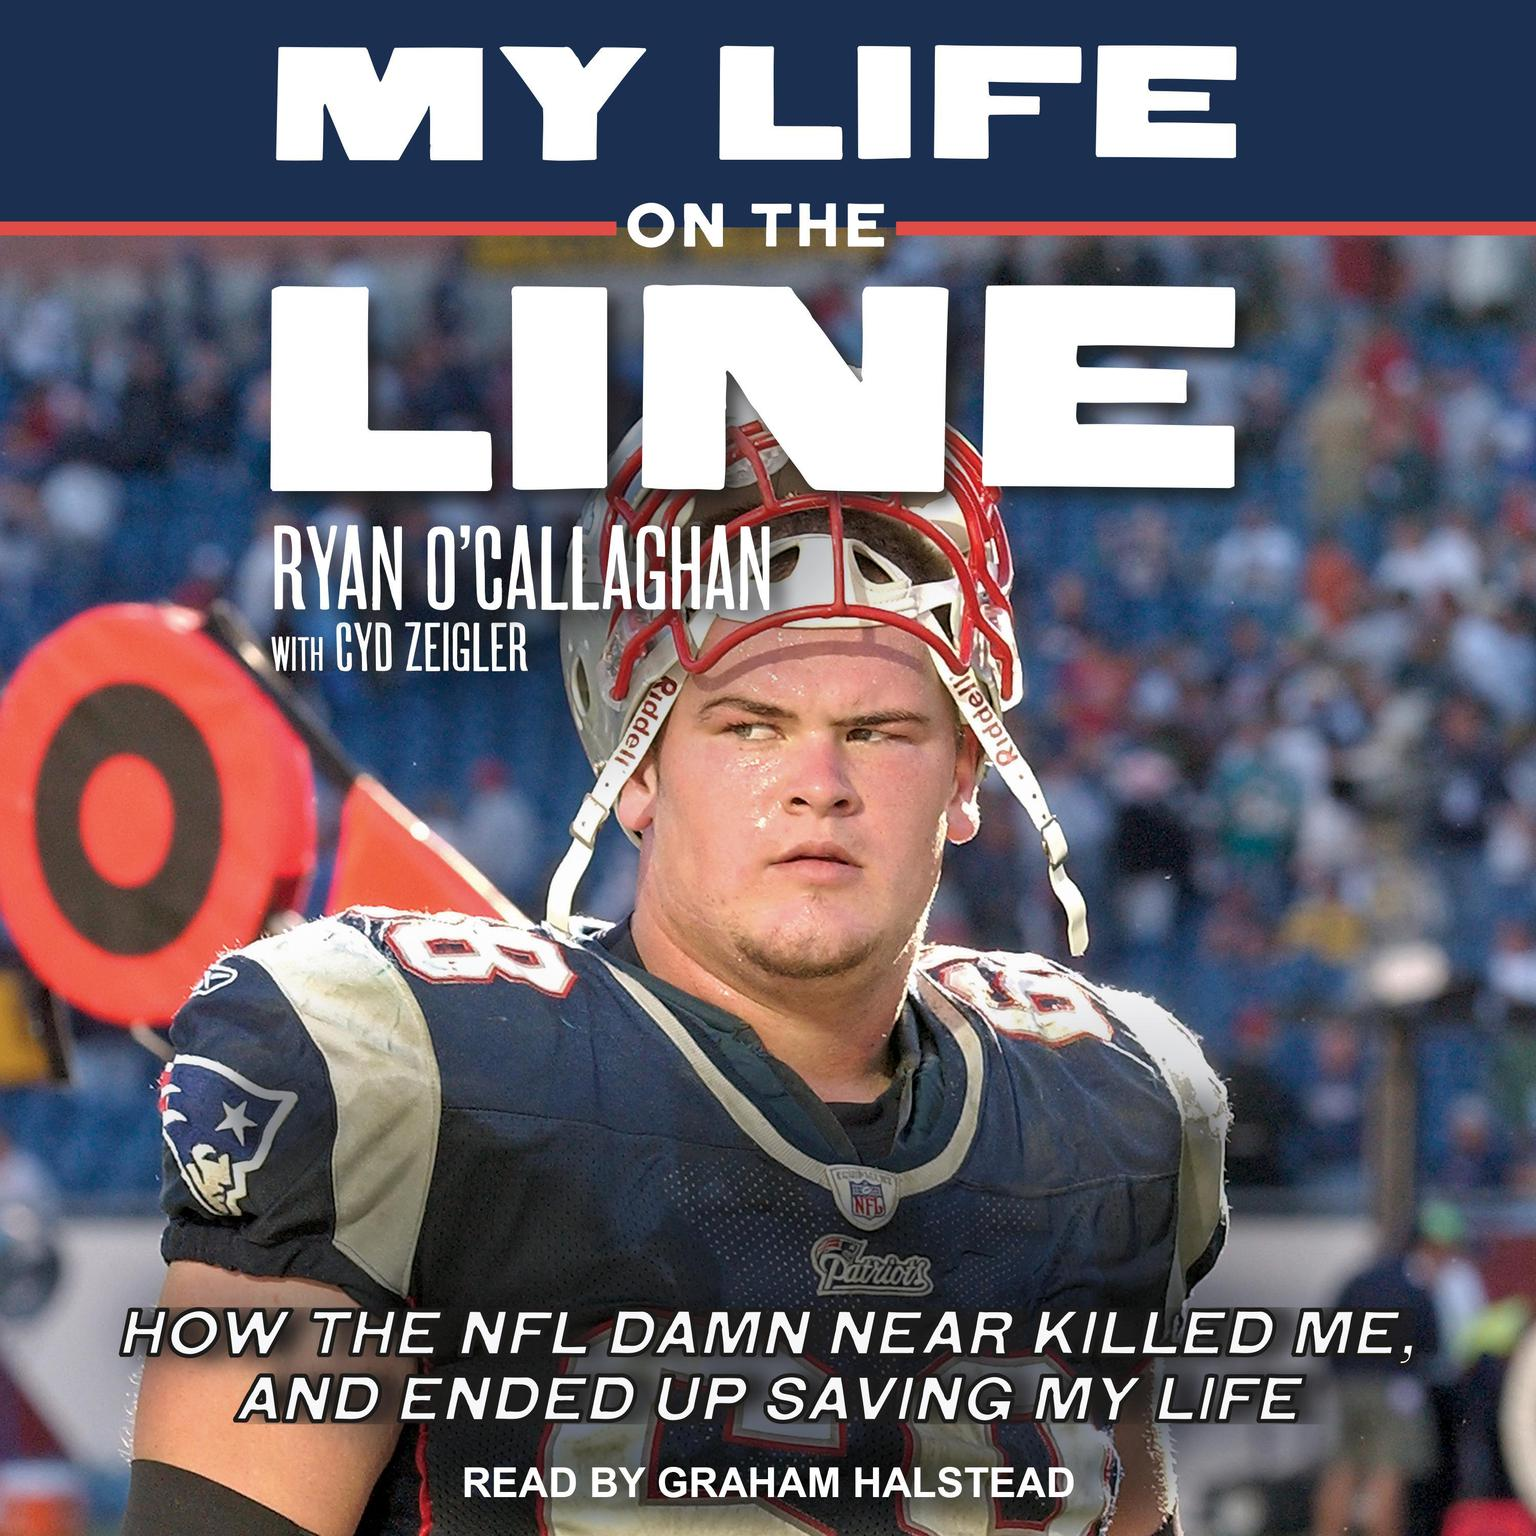 My Life On The Line: How the NFL Damn Near Killed Me, and Ended Up Saving My Life Audiobook, by Ryan O'Callaghan